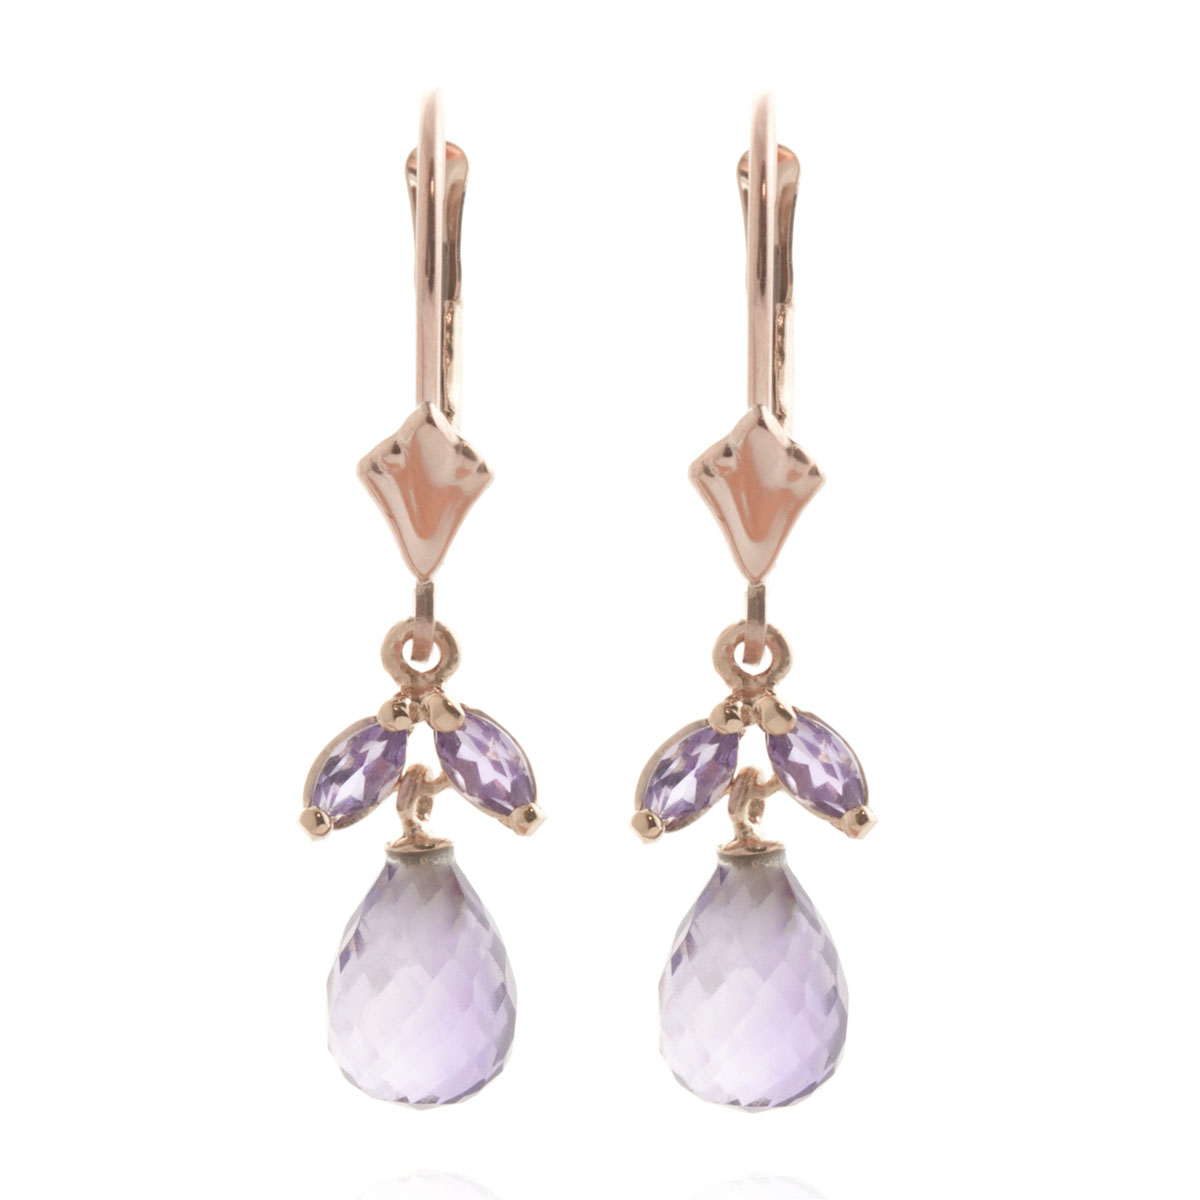 Amethyst Snowdrop Earrings 3.4 ctw in 9ct Rose Gold